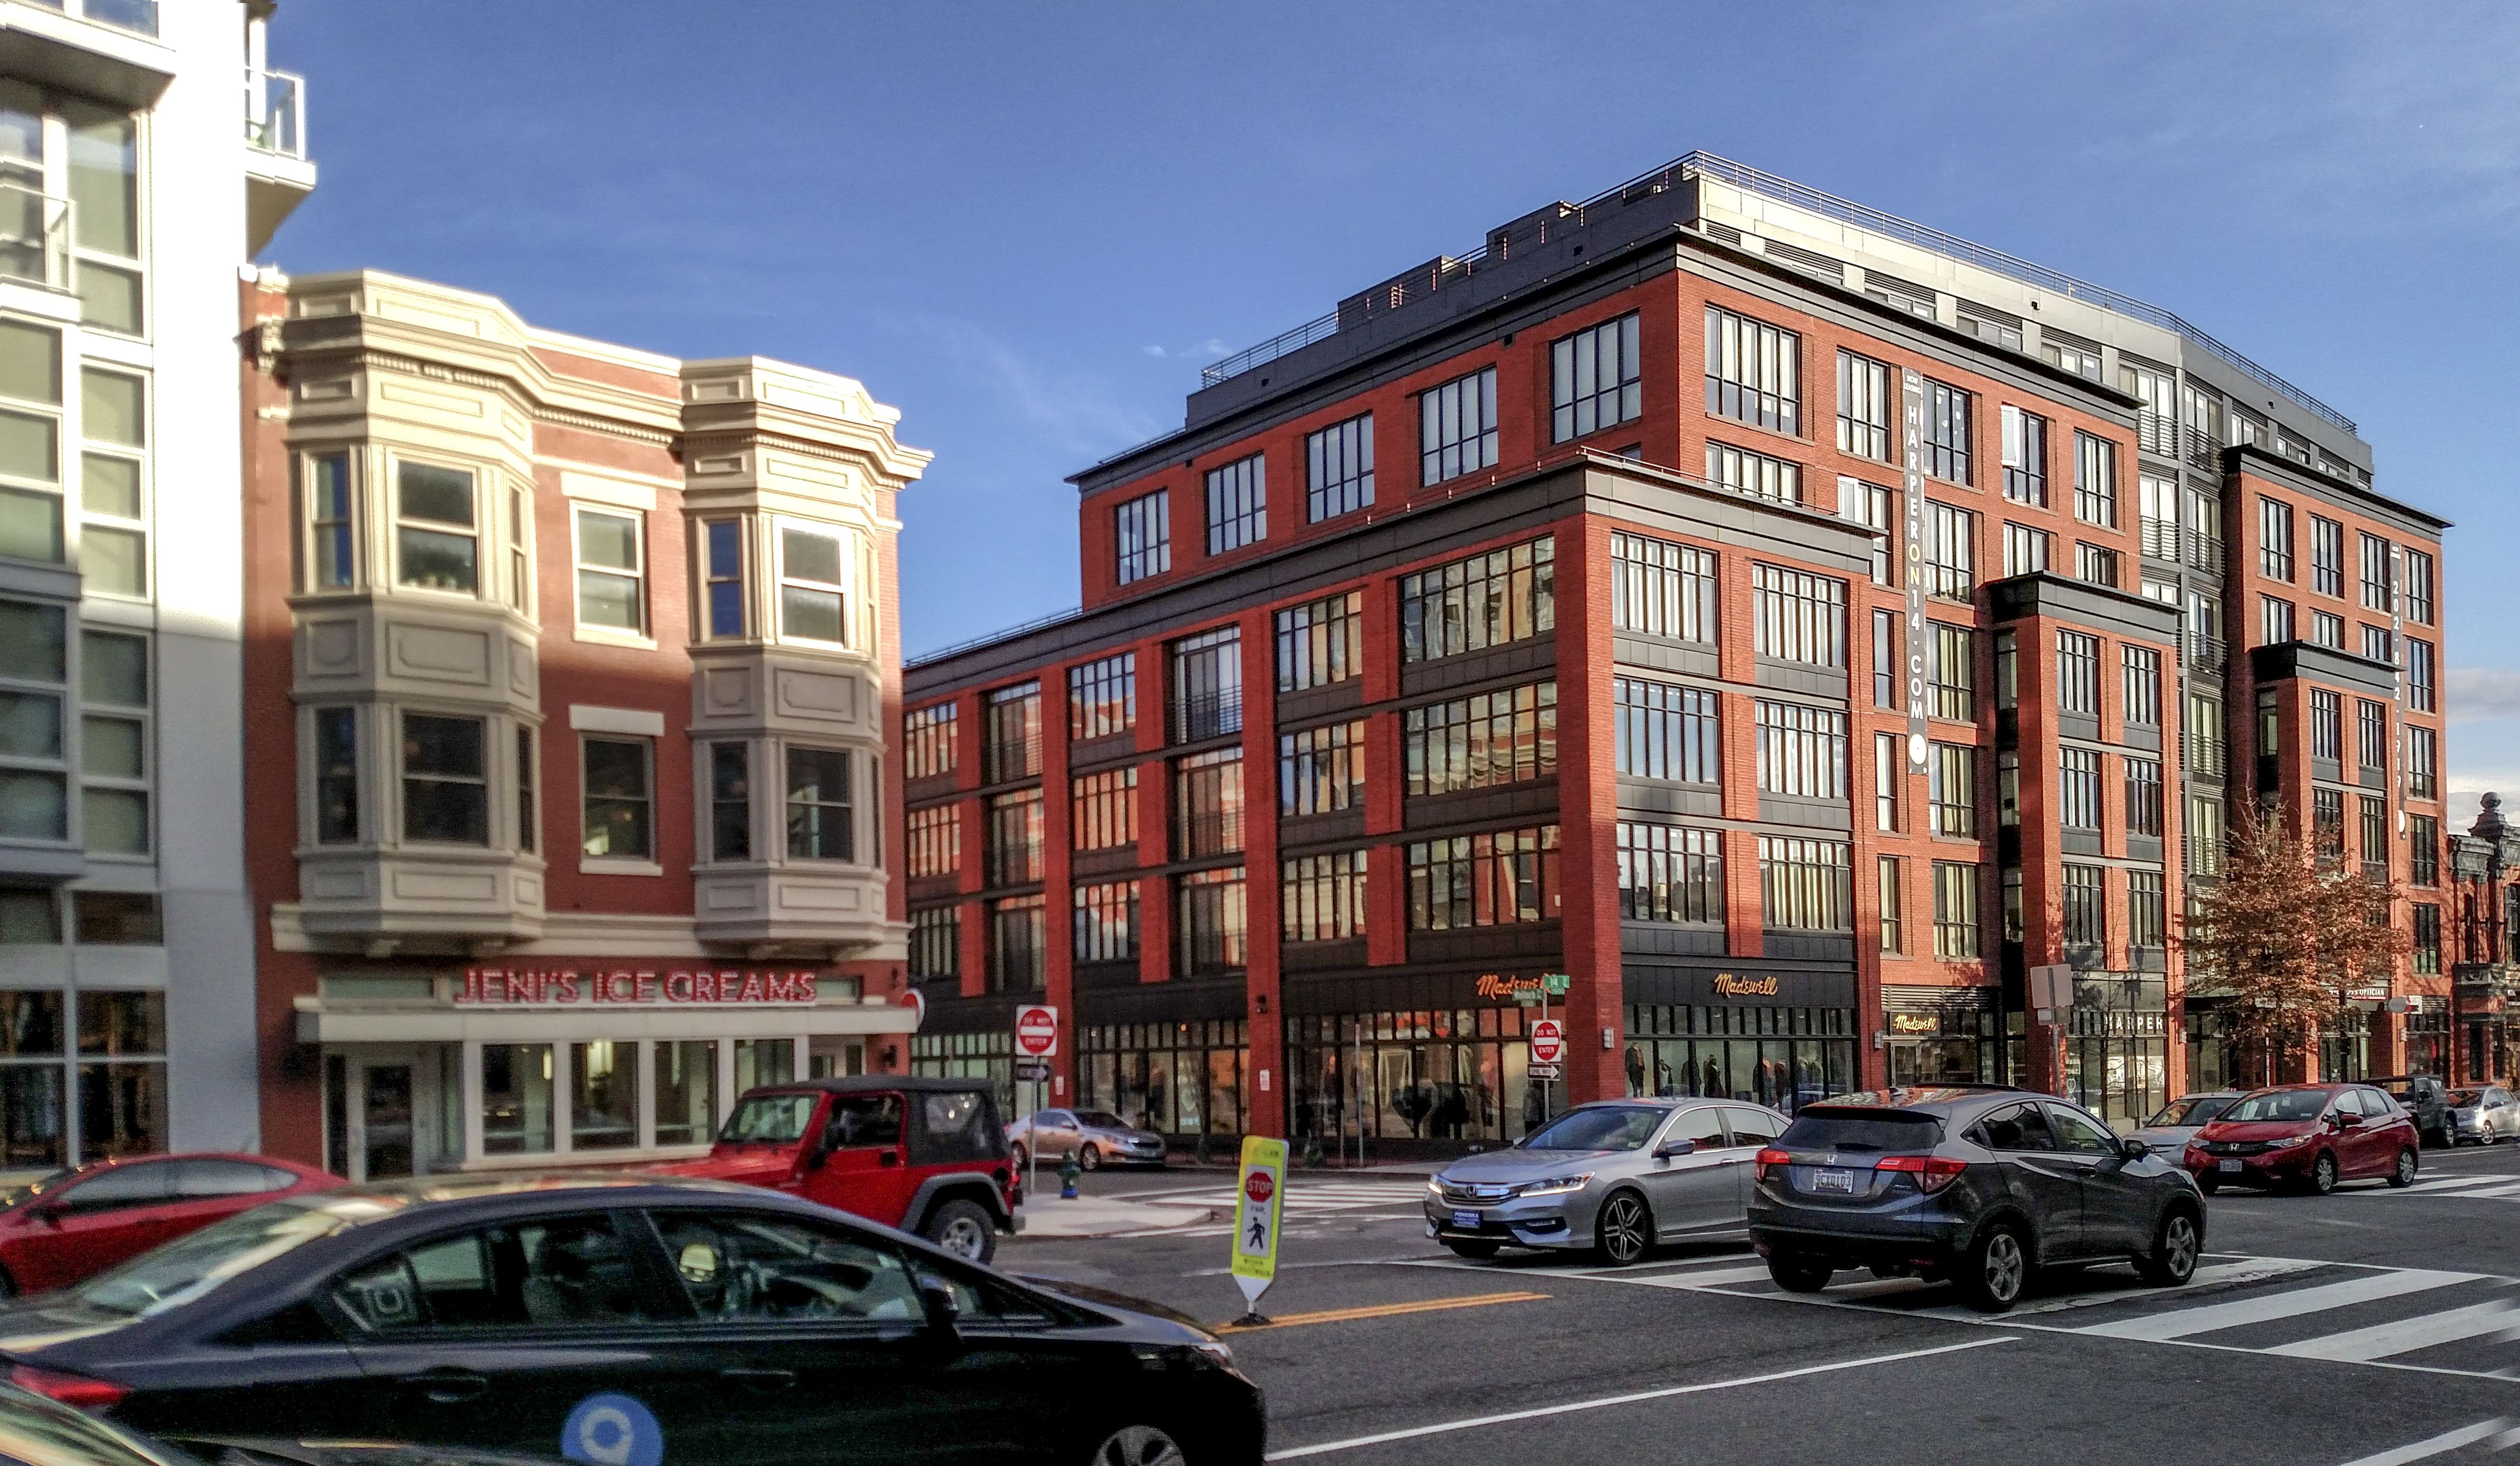 The Top 9 Things to Do on 14th Street, Washington, D.C.